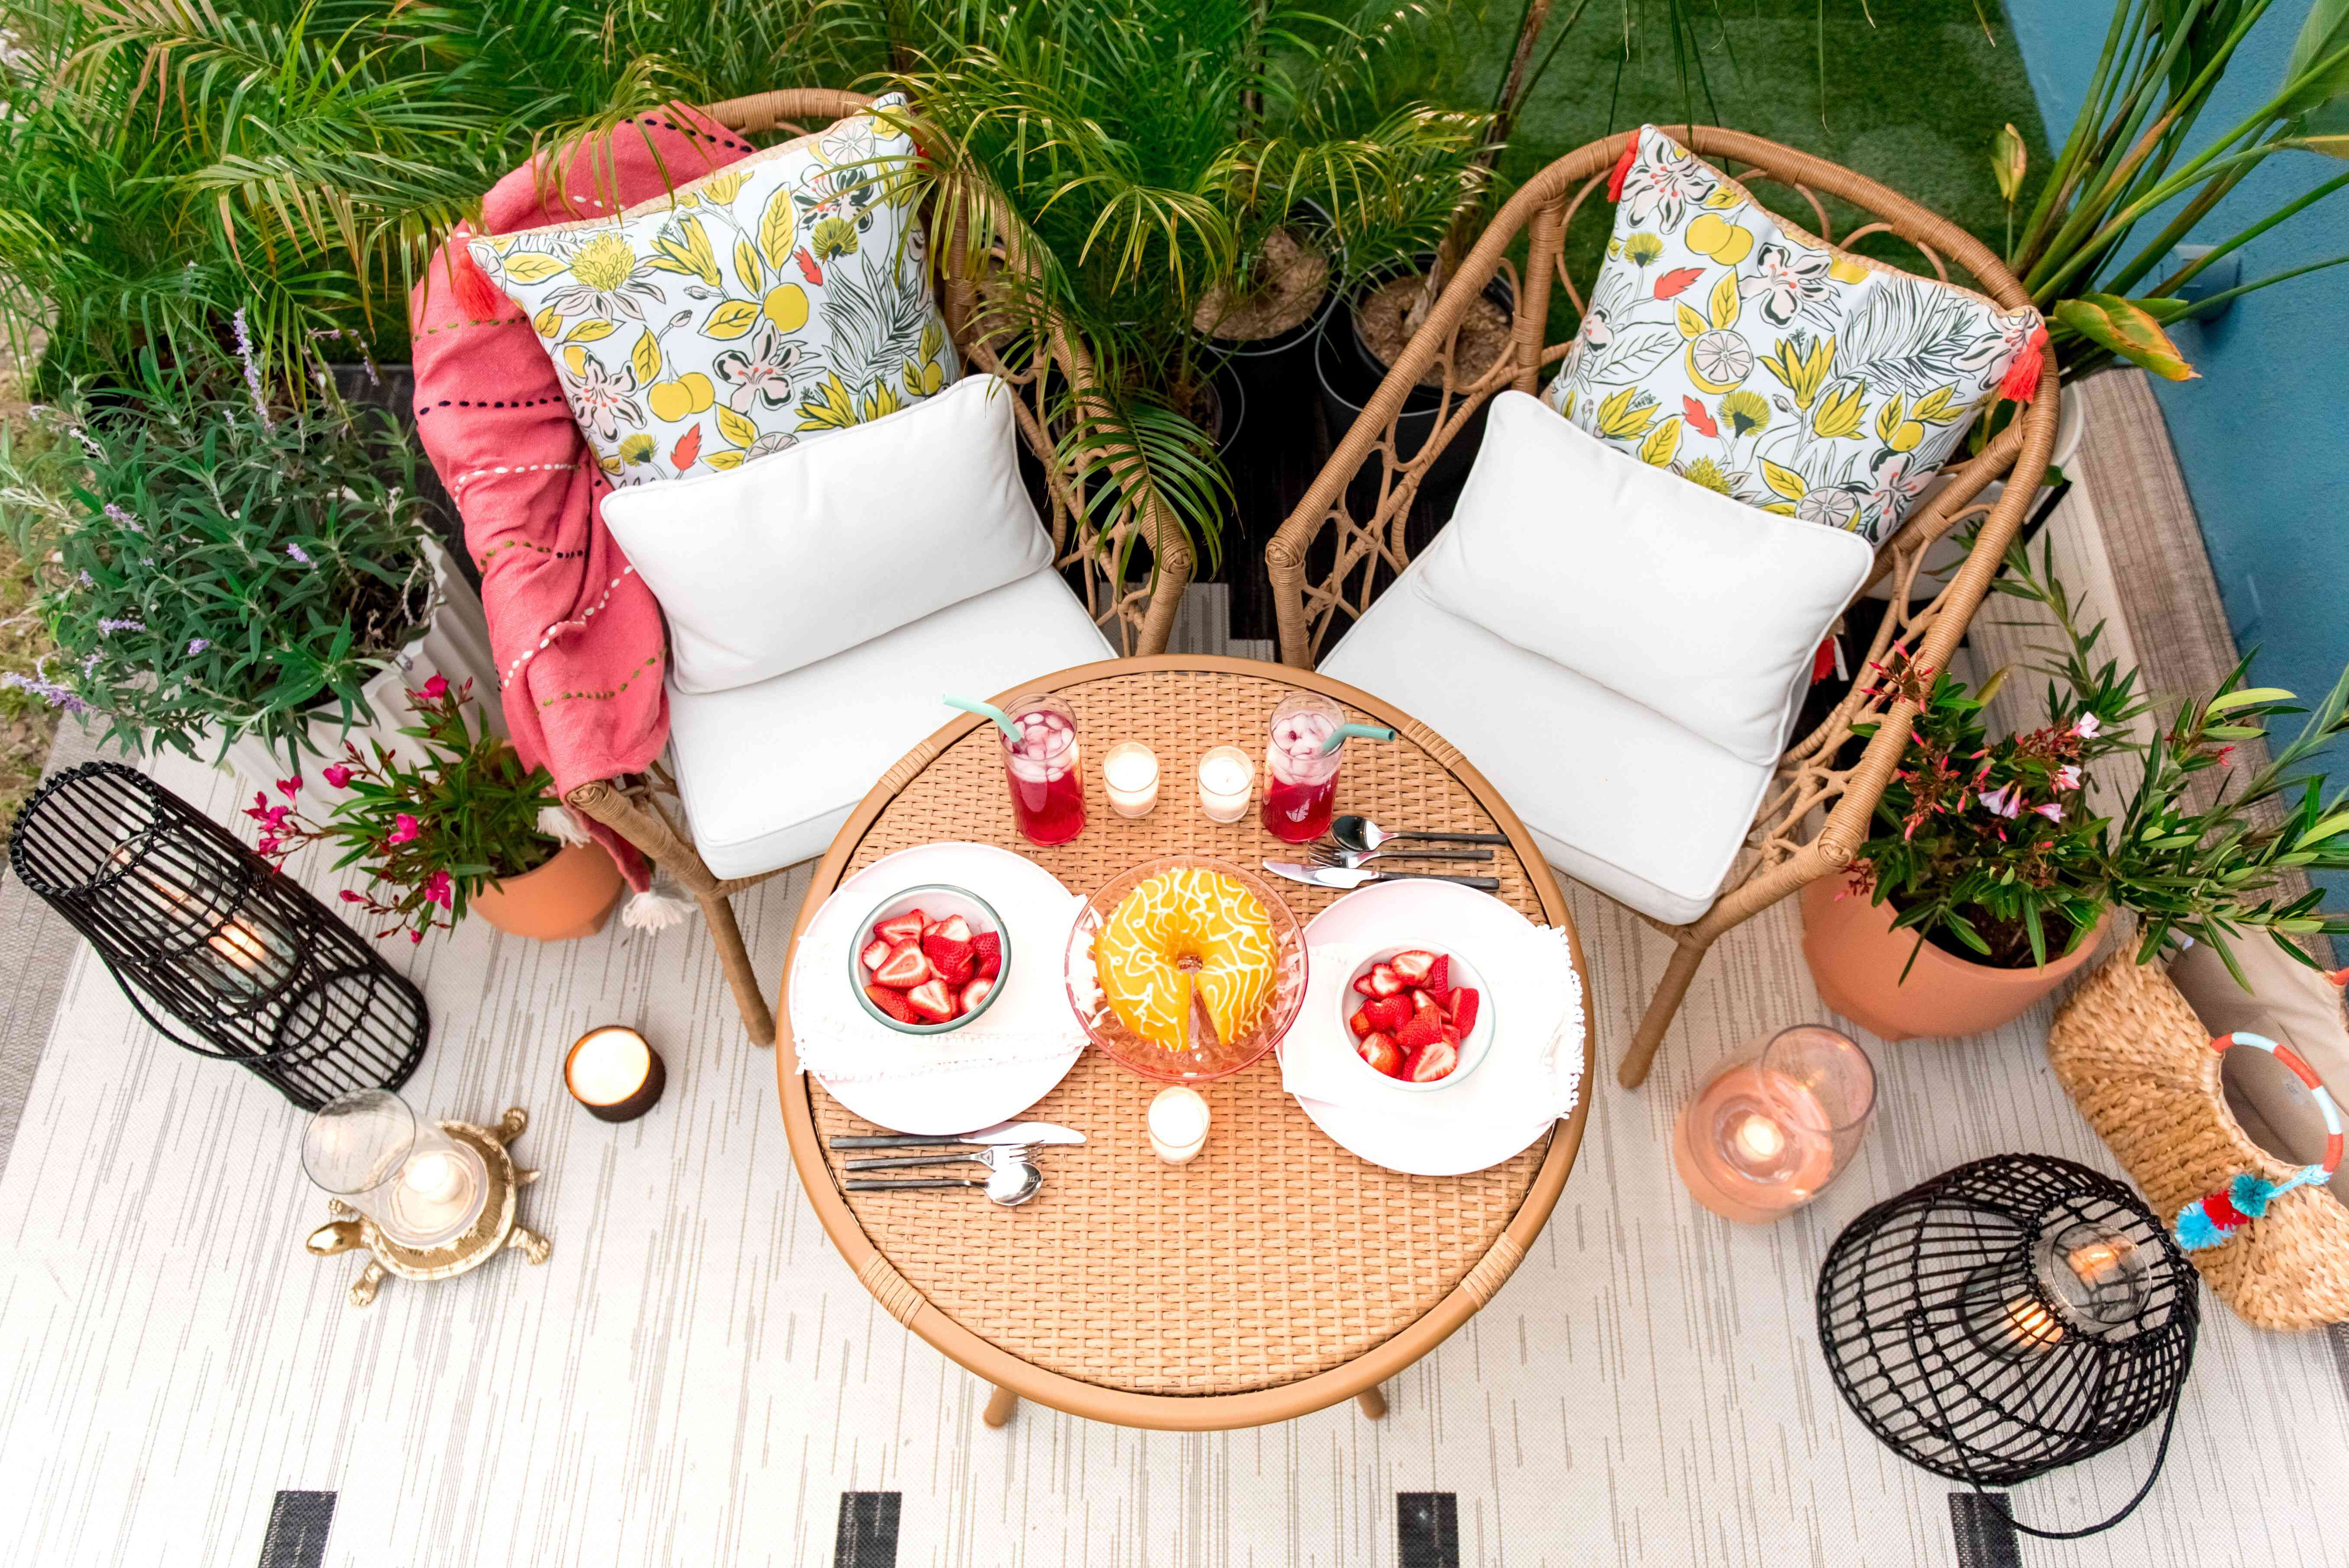 Weather-resistant pillows for outdoor dining set